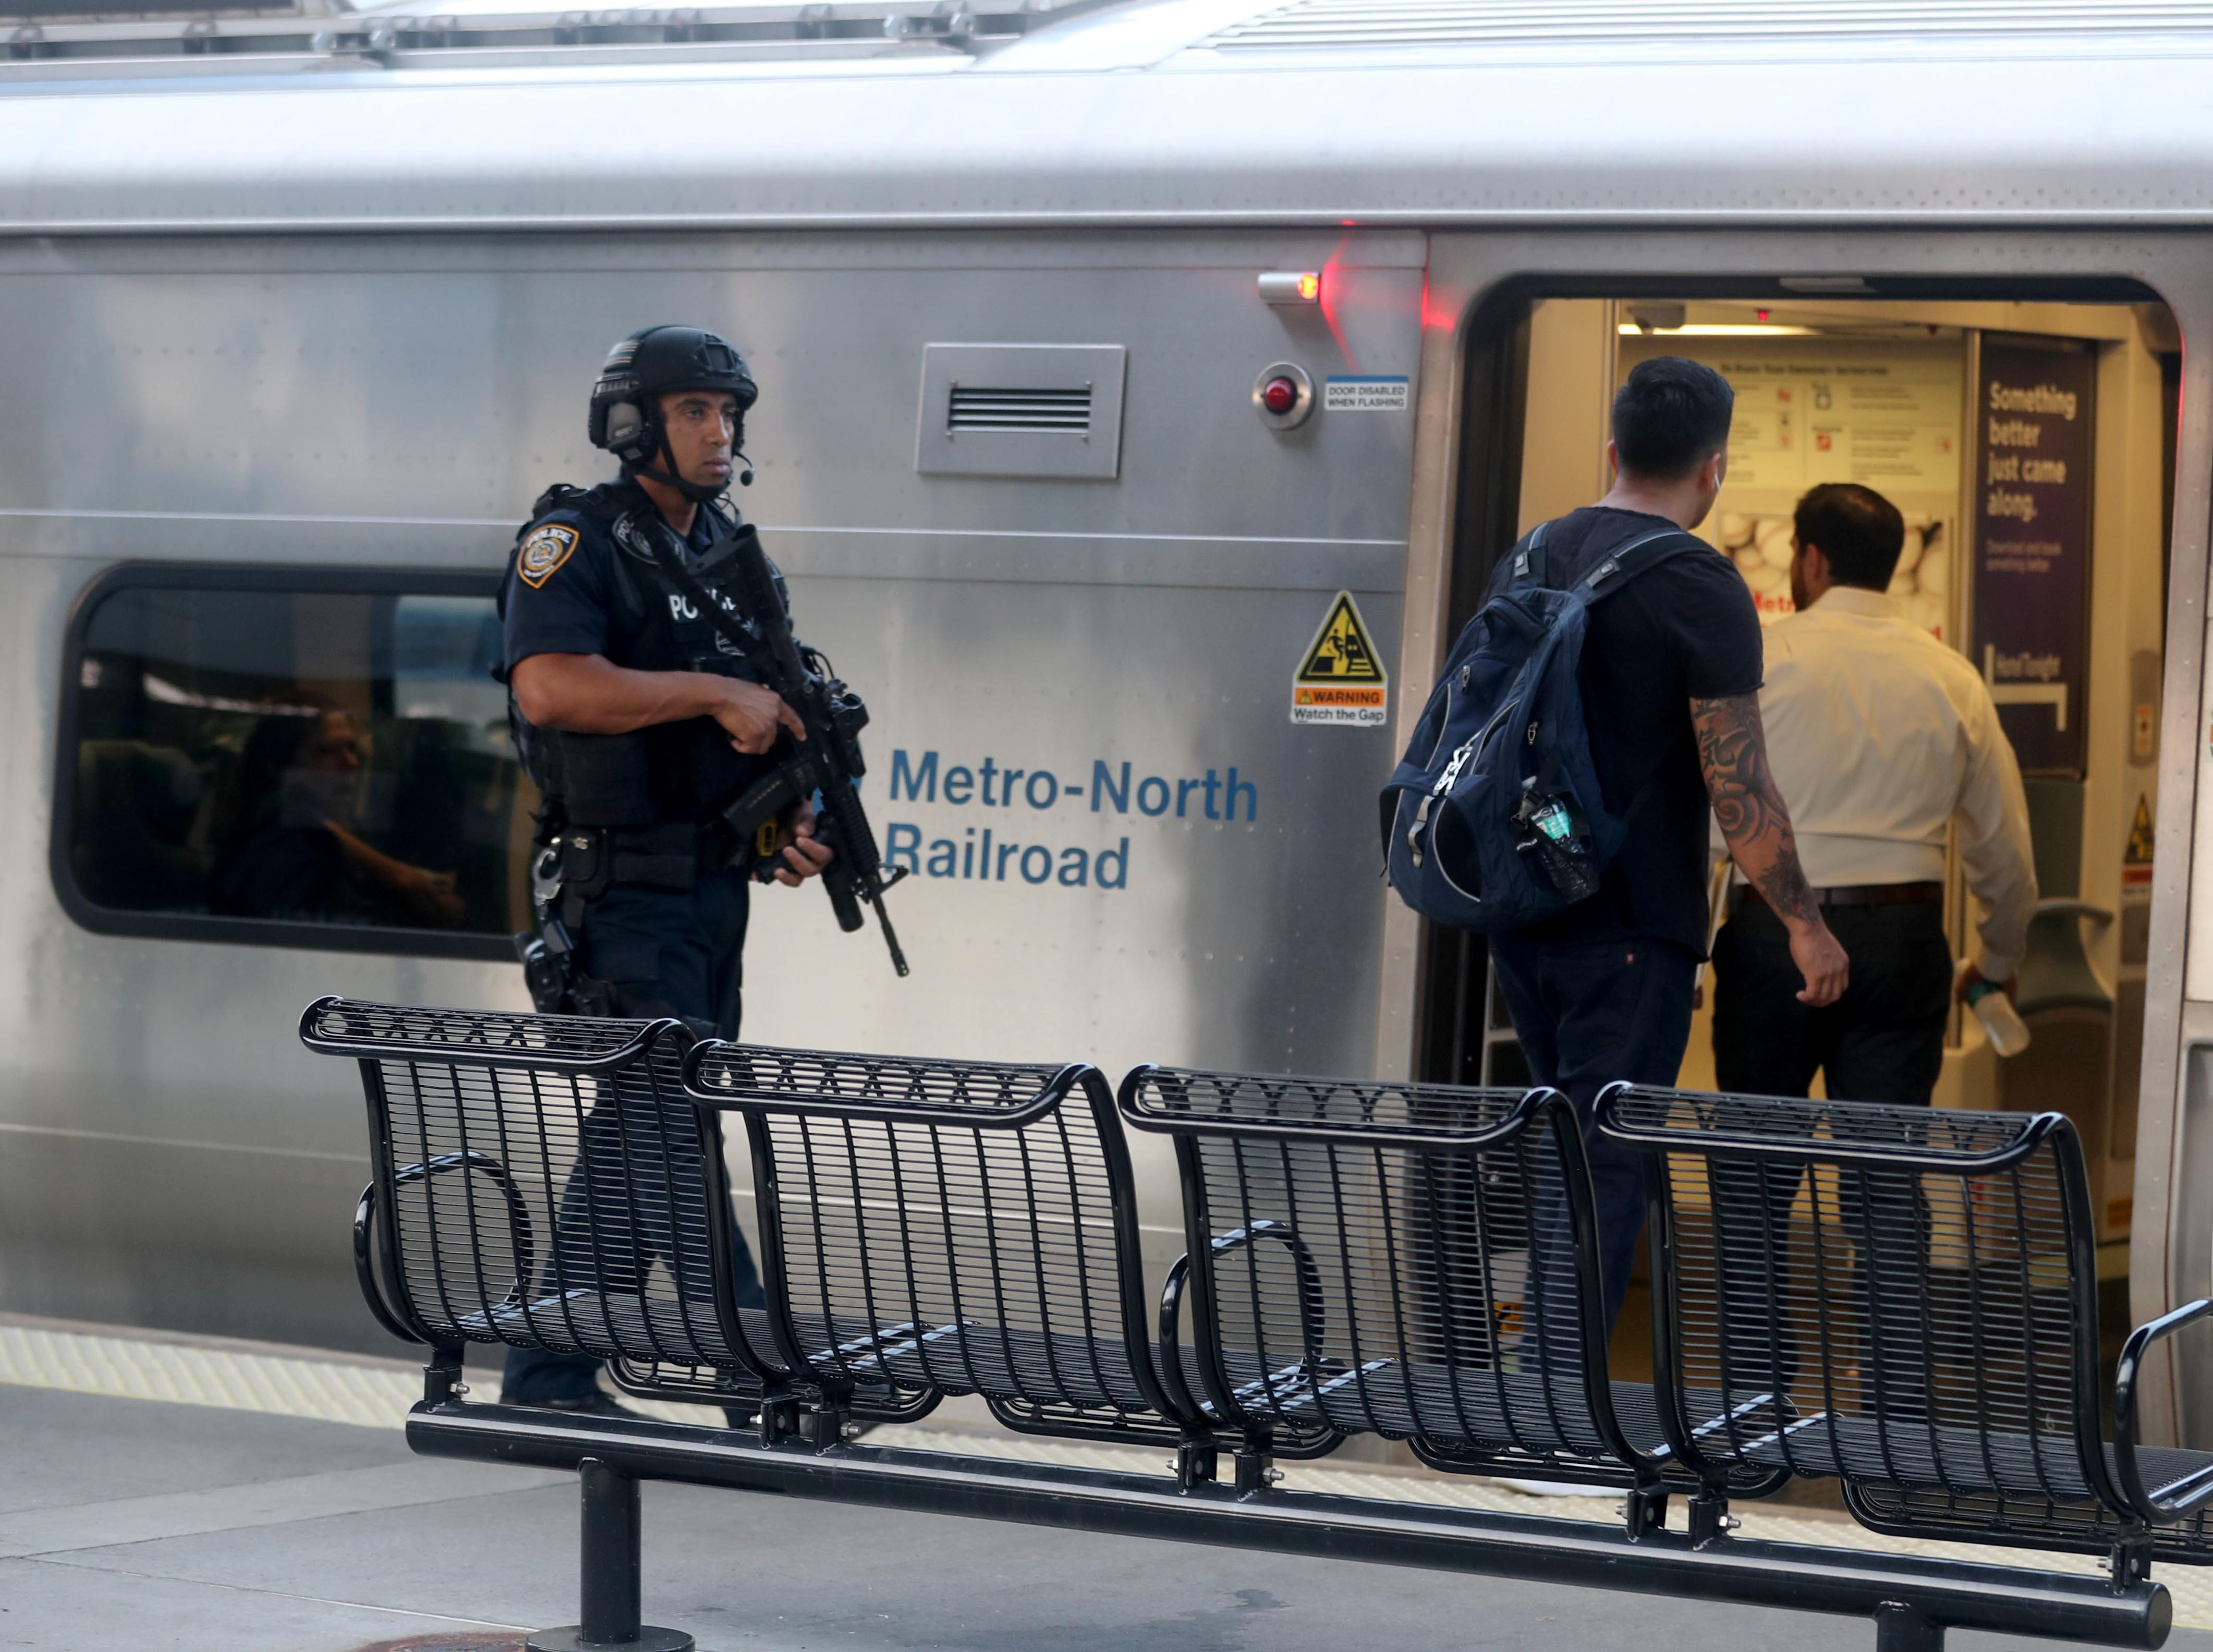 An MTA police officer stands on the platform as passengers board a New York City bound Metro-North train at the Croton-Harmon station during a multi-department safety drill Aug. 28, 2018. Officers from the MTA, Amtrak, Croton Harmon, New York State Police, TSA, and Department of Homeland Security departments took part in the drill during the morning rush hour. The drill involved heightened platform patrols, increased security presence onboard trains, explosives detection canine sweeps, and counter-surveillance measures. Similar drills were also held at several other Hudson Line stations during the morning commute.